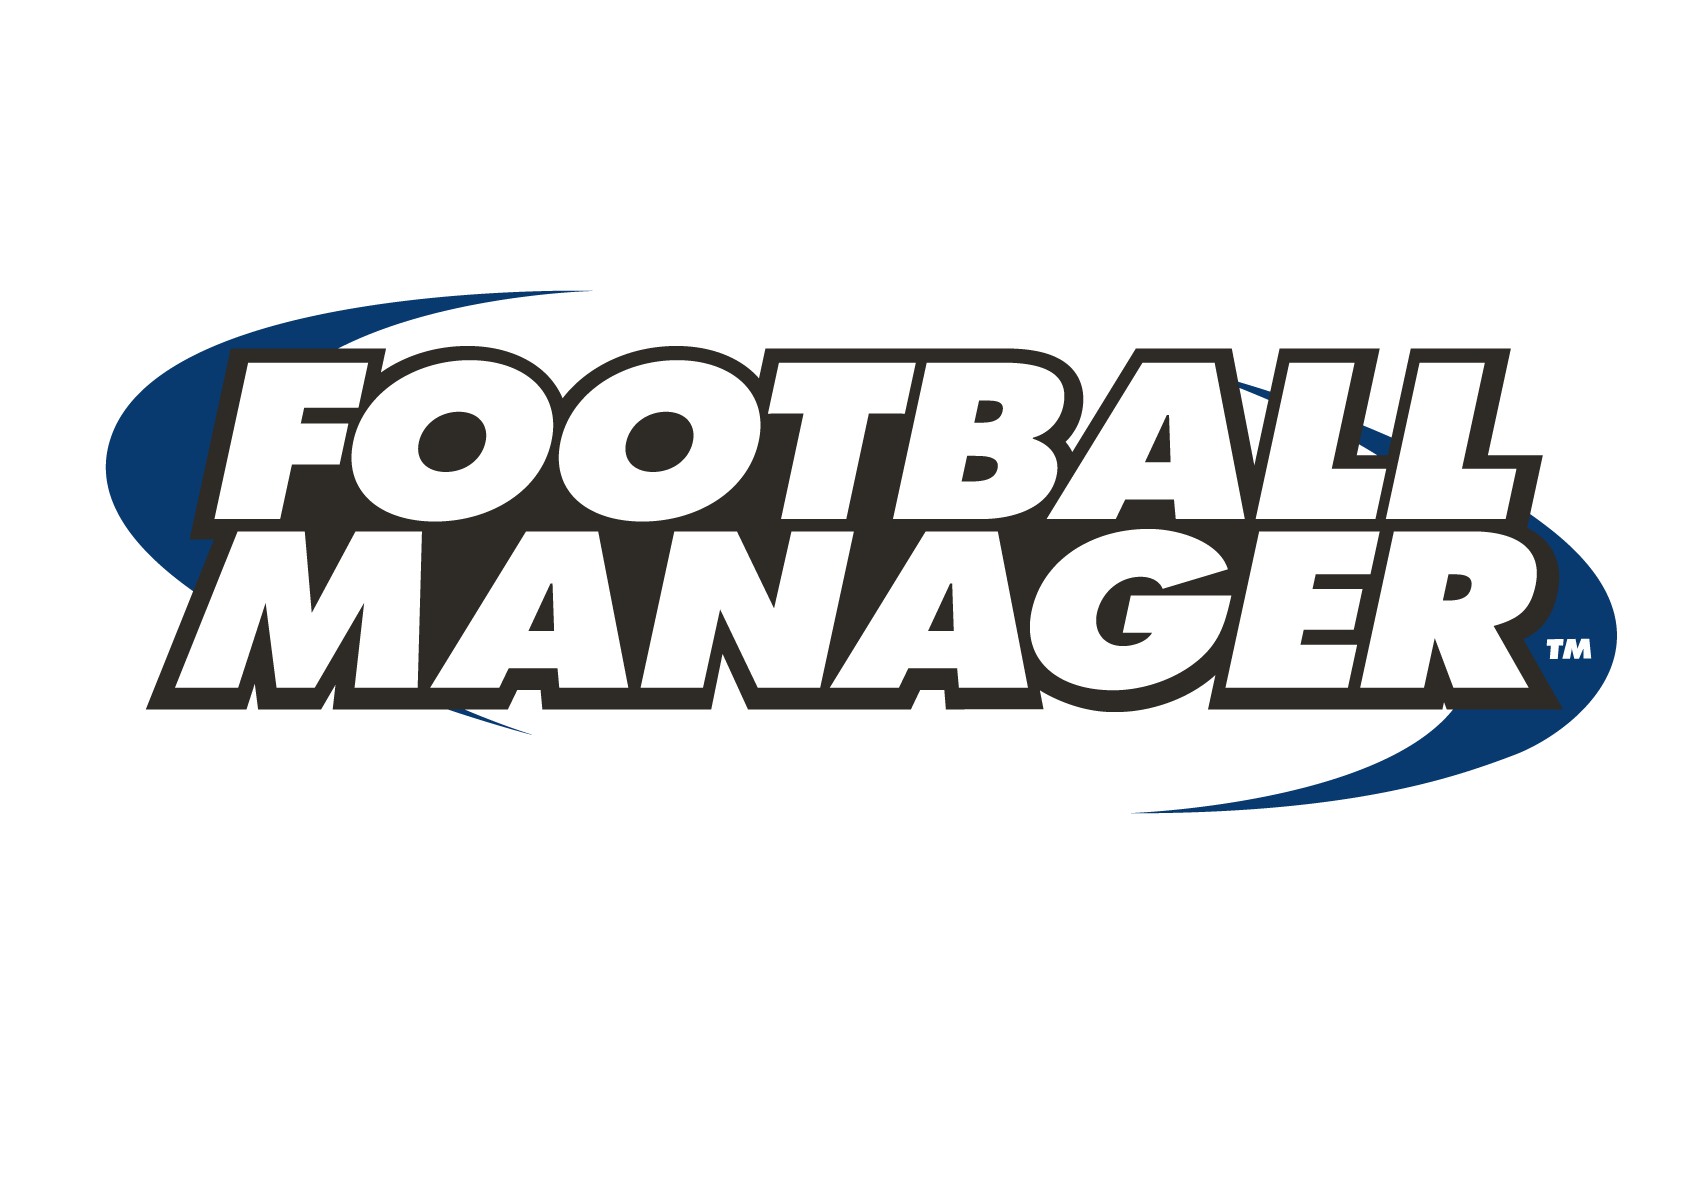 Football Manager 2020 Crack + License Key Free Download 2020